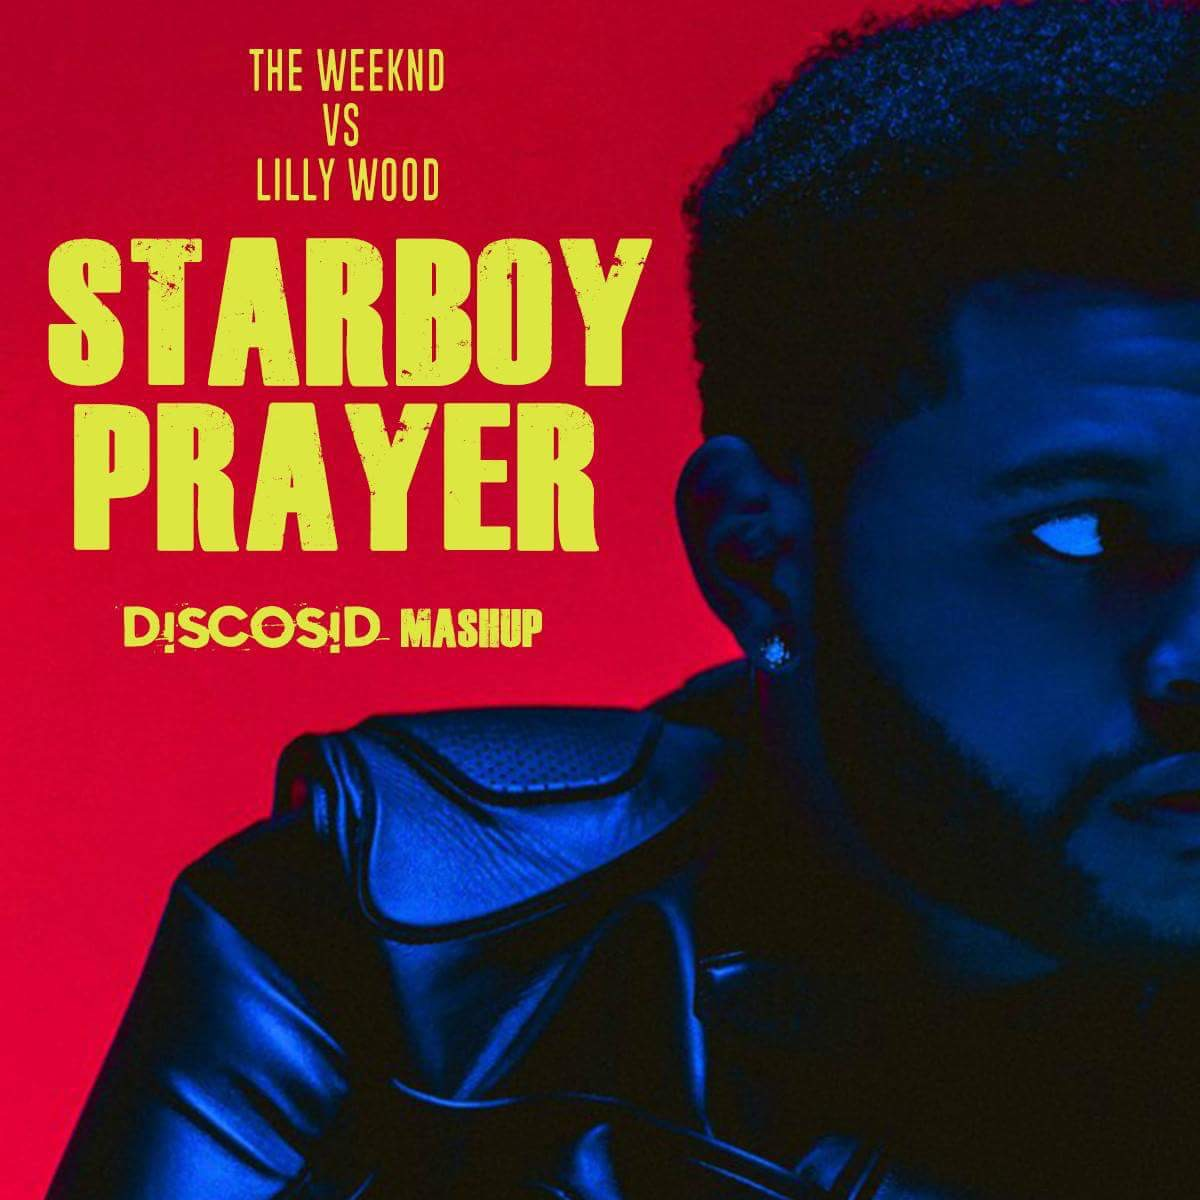 The Weeknd & Daft Punk Vs Lilly Wood & The Prick - Starboy Prayer (Discosid Mashup)